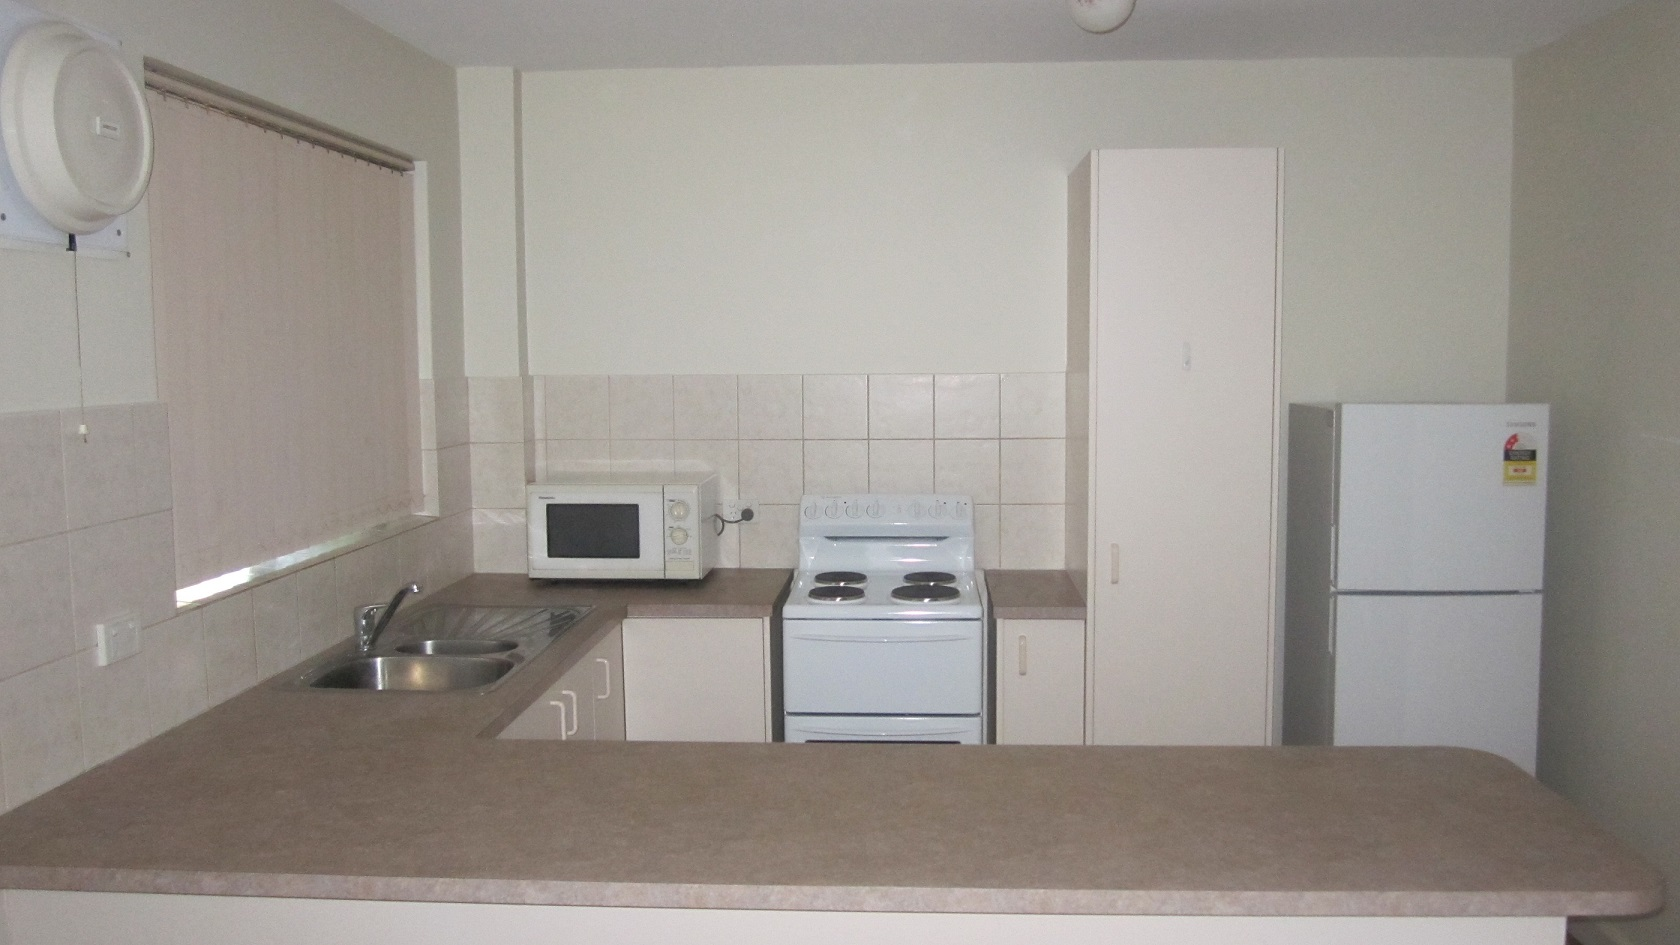 RECENTLY RENOVATED 2 X 1 FURNISHED UNIT IN SECURE COMPLEX!!